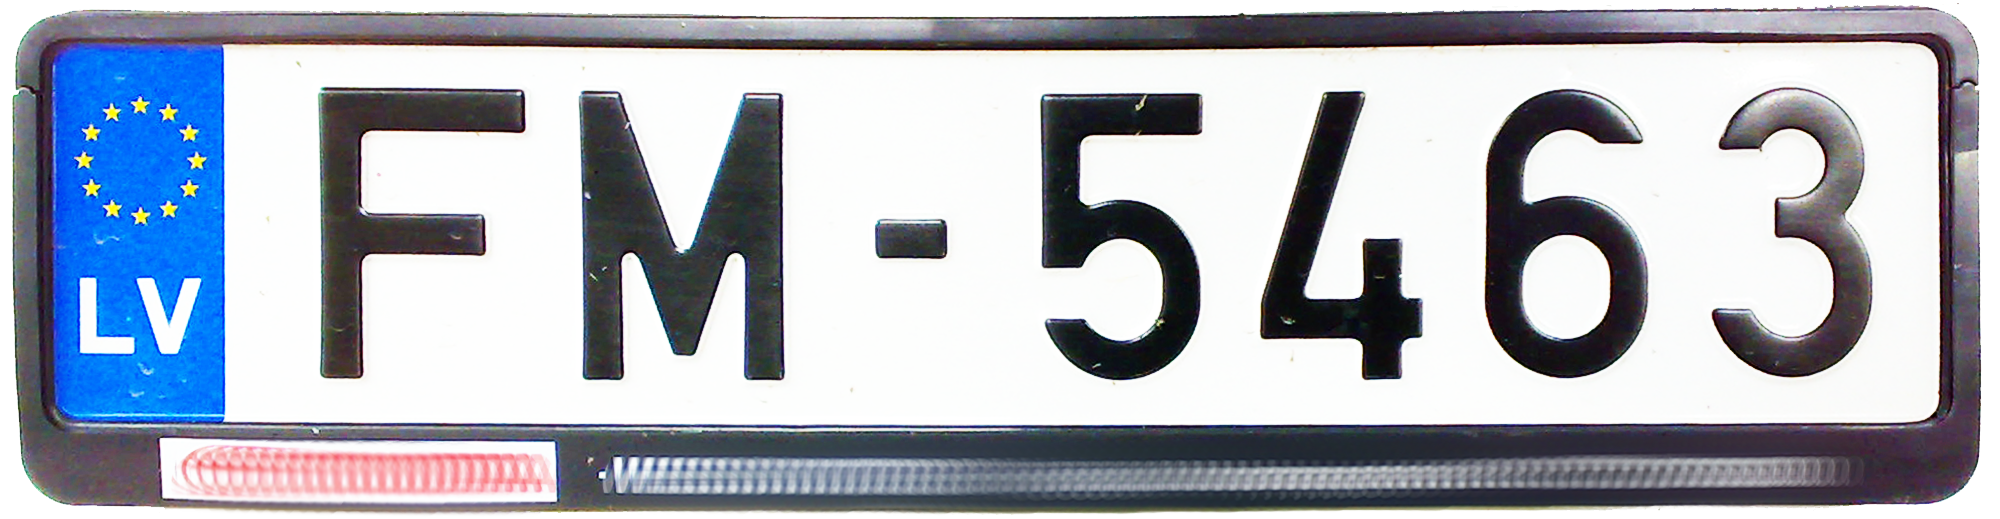 Car number plate search kenya 7s